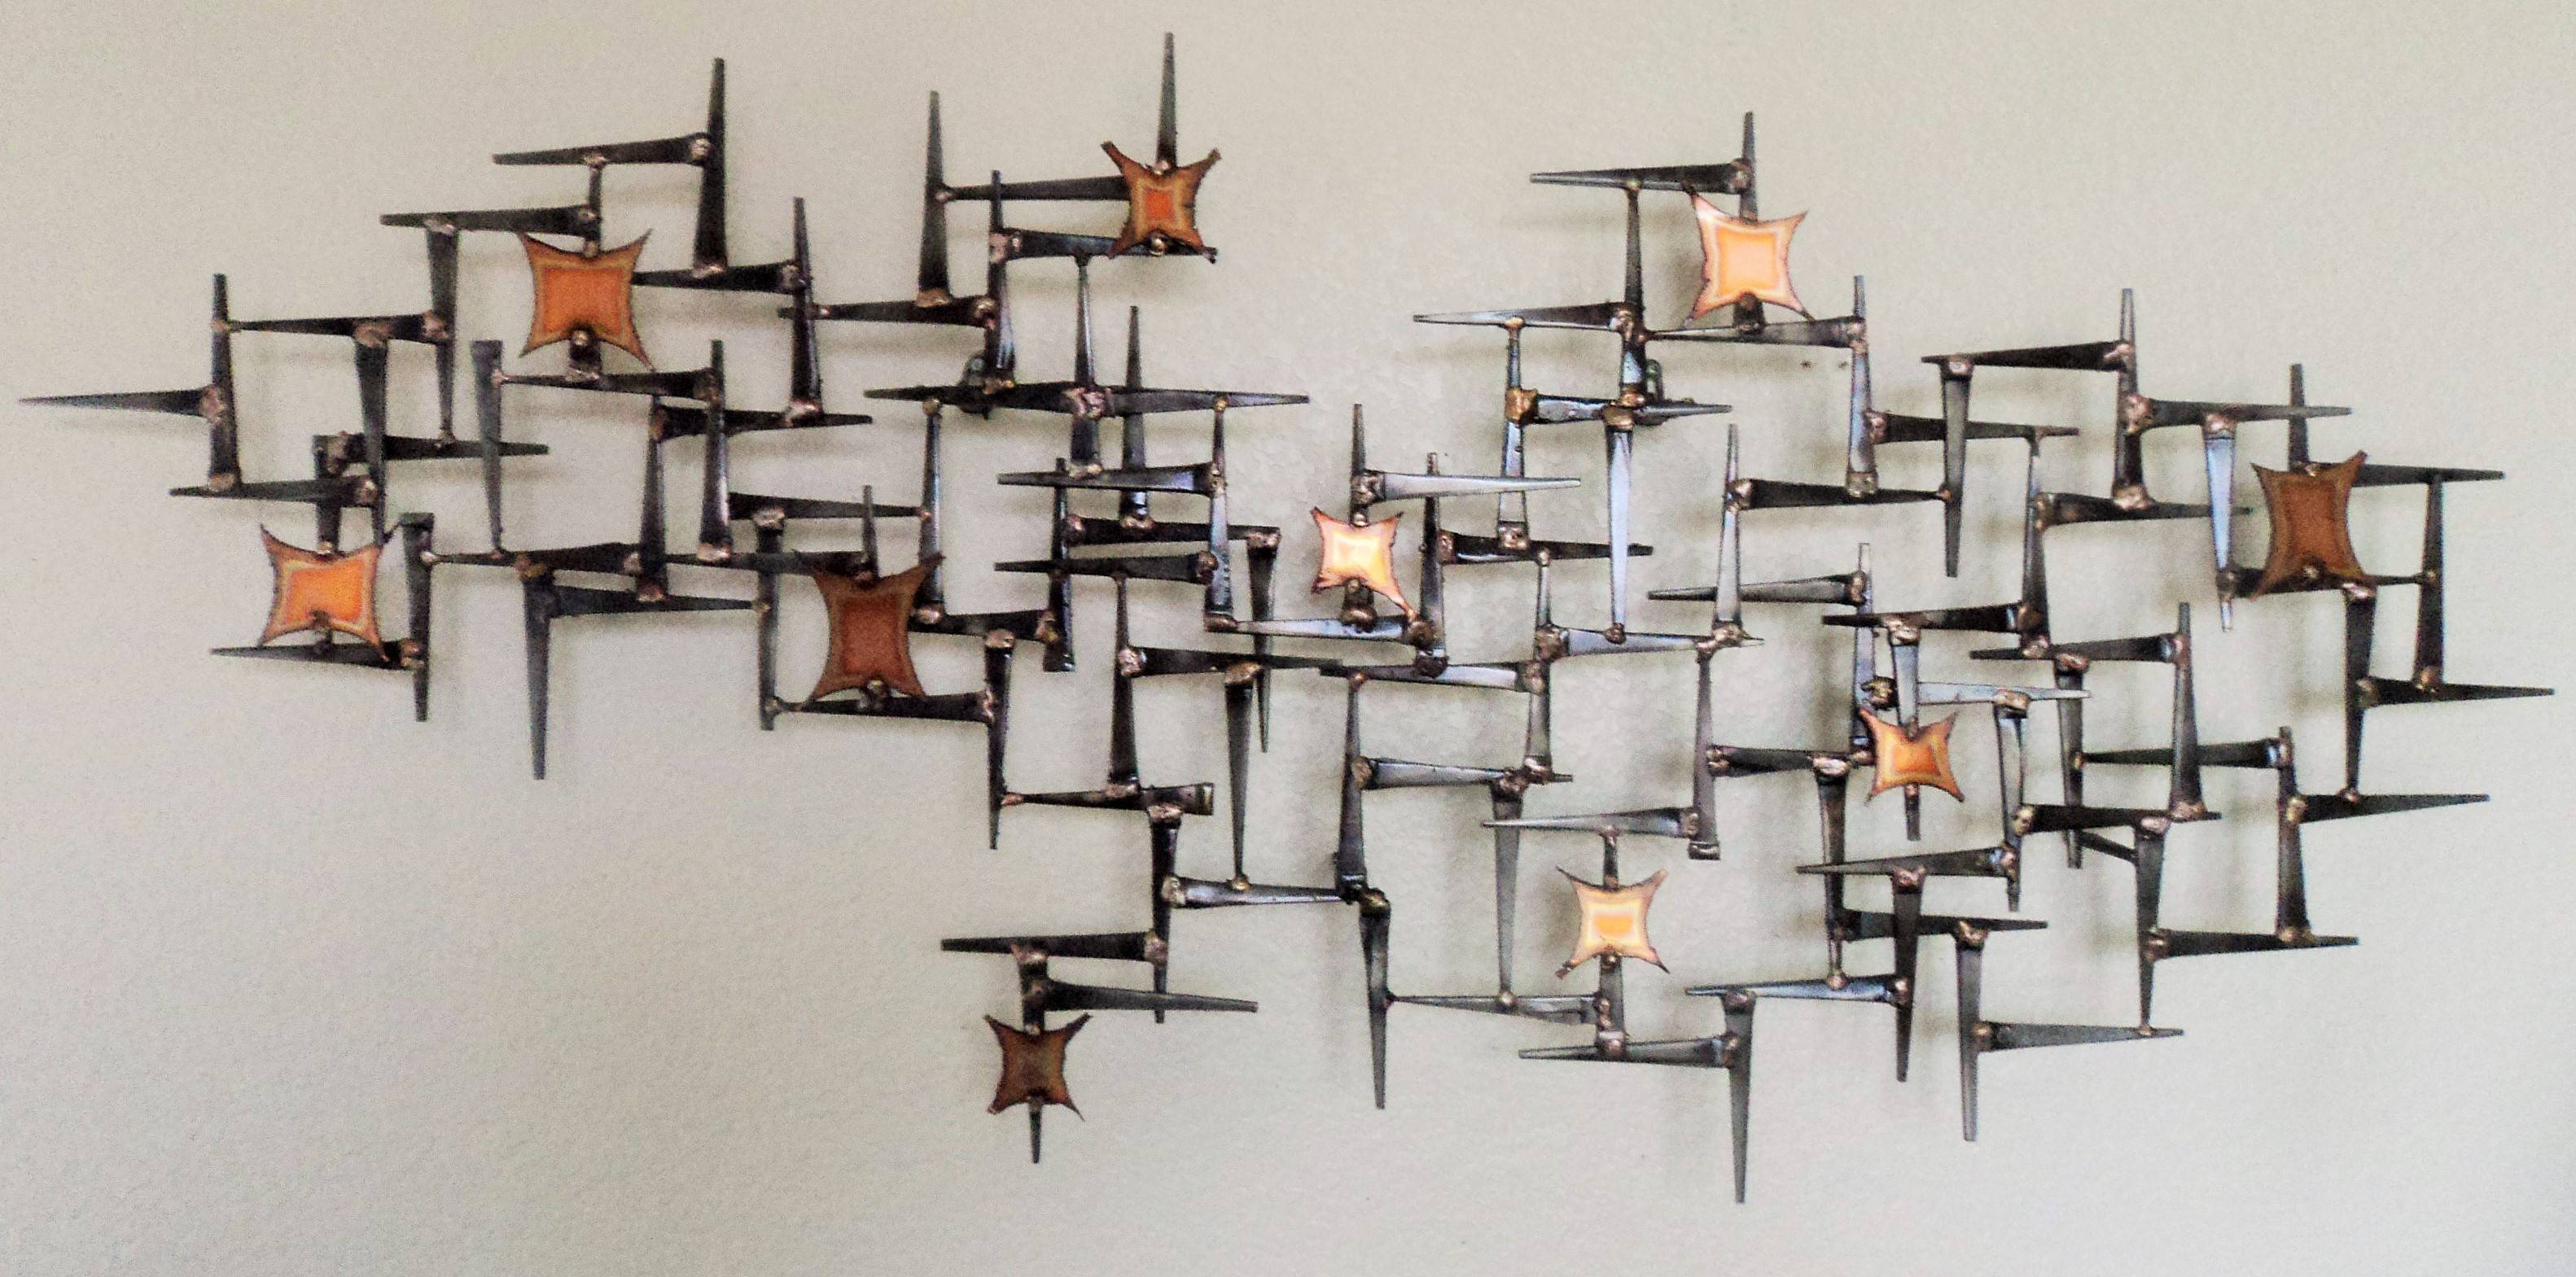 Mid Century Modern Wall Art Sculpture | Best Wall Art 2018 With Regard To Most Recently Released Mid Century Modern Metal Wall Art (View 14 of 20)